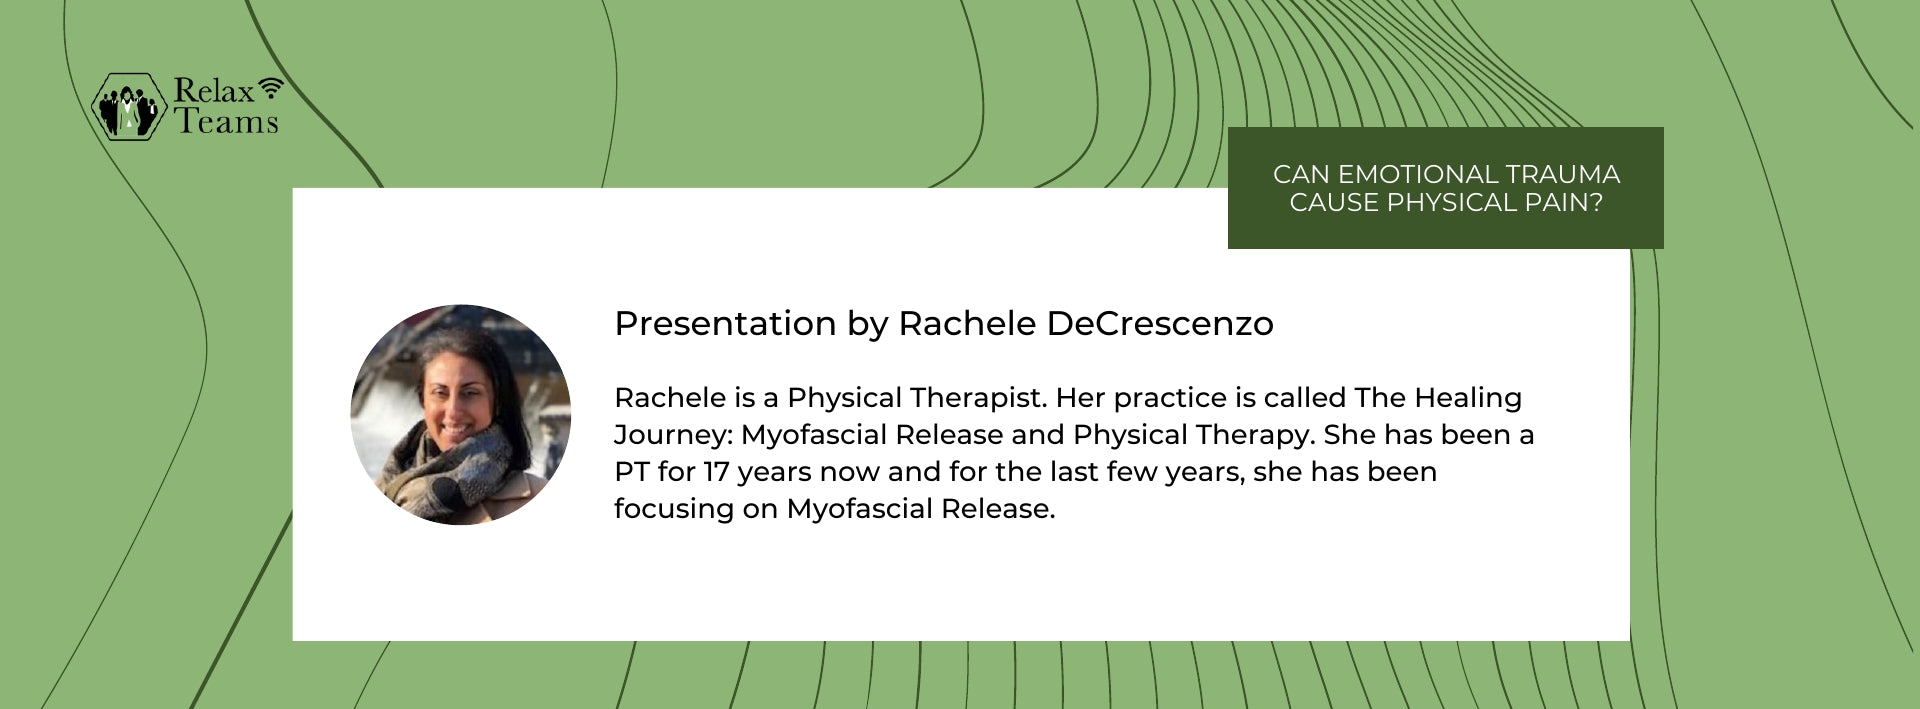 Rachele is a Physical Therapist. Her practice is called The Healing Journey: Myofascial Release and Physical Therapy.